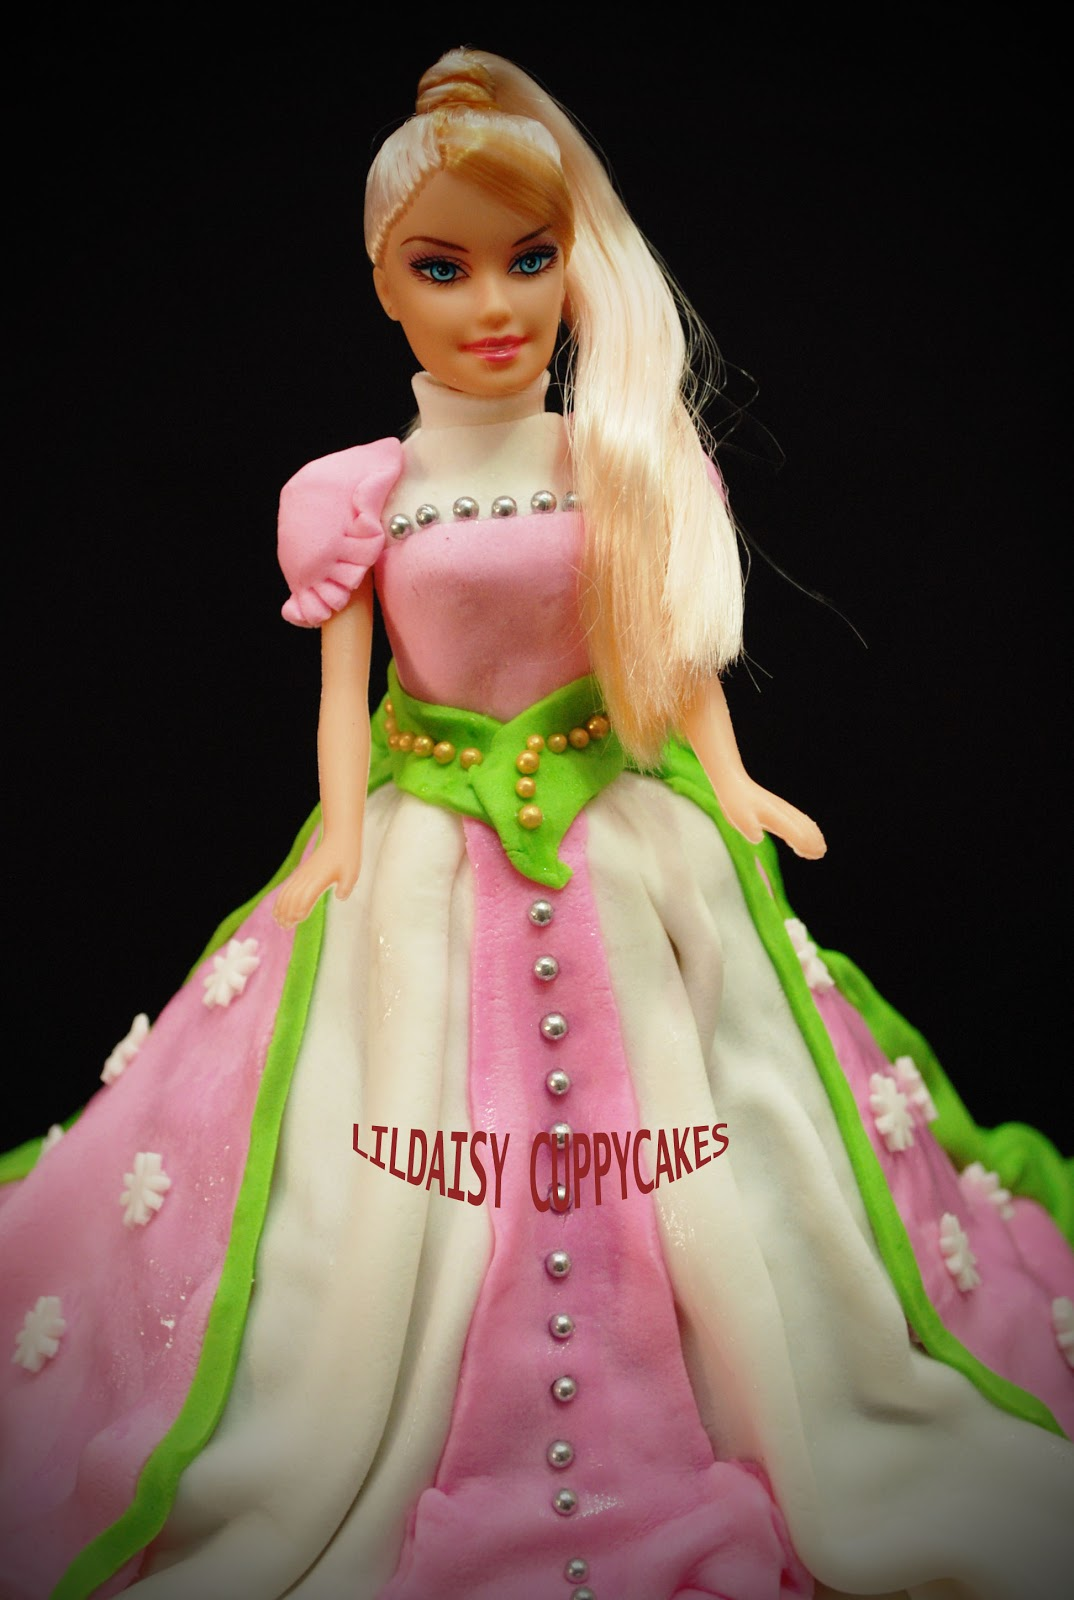 Each of our barbie cake weights about 2kg pricing are around